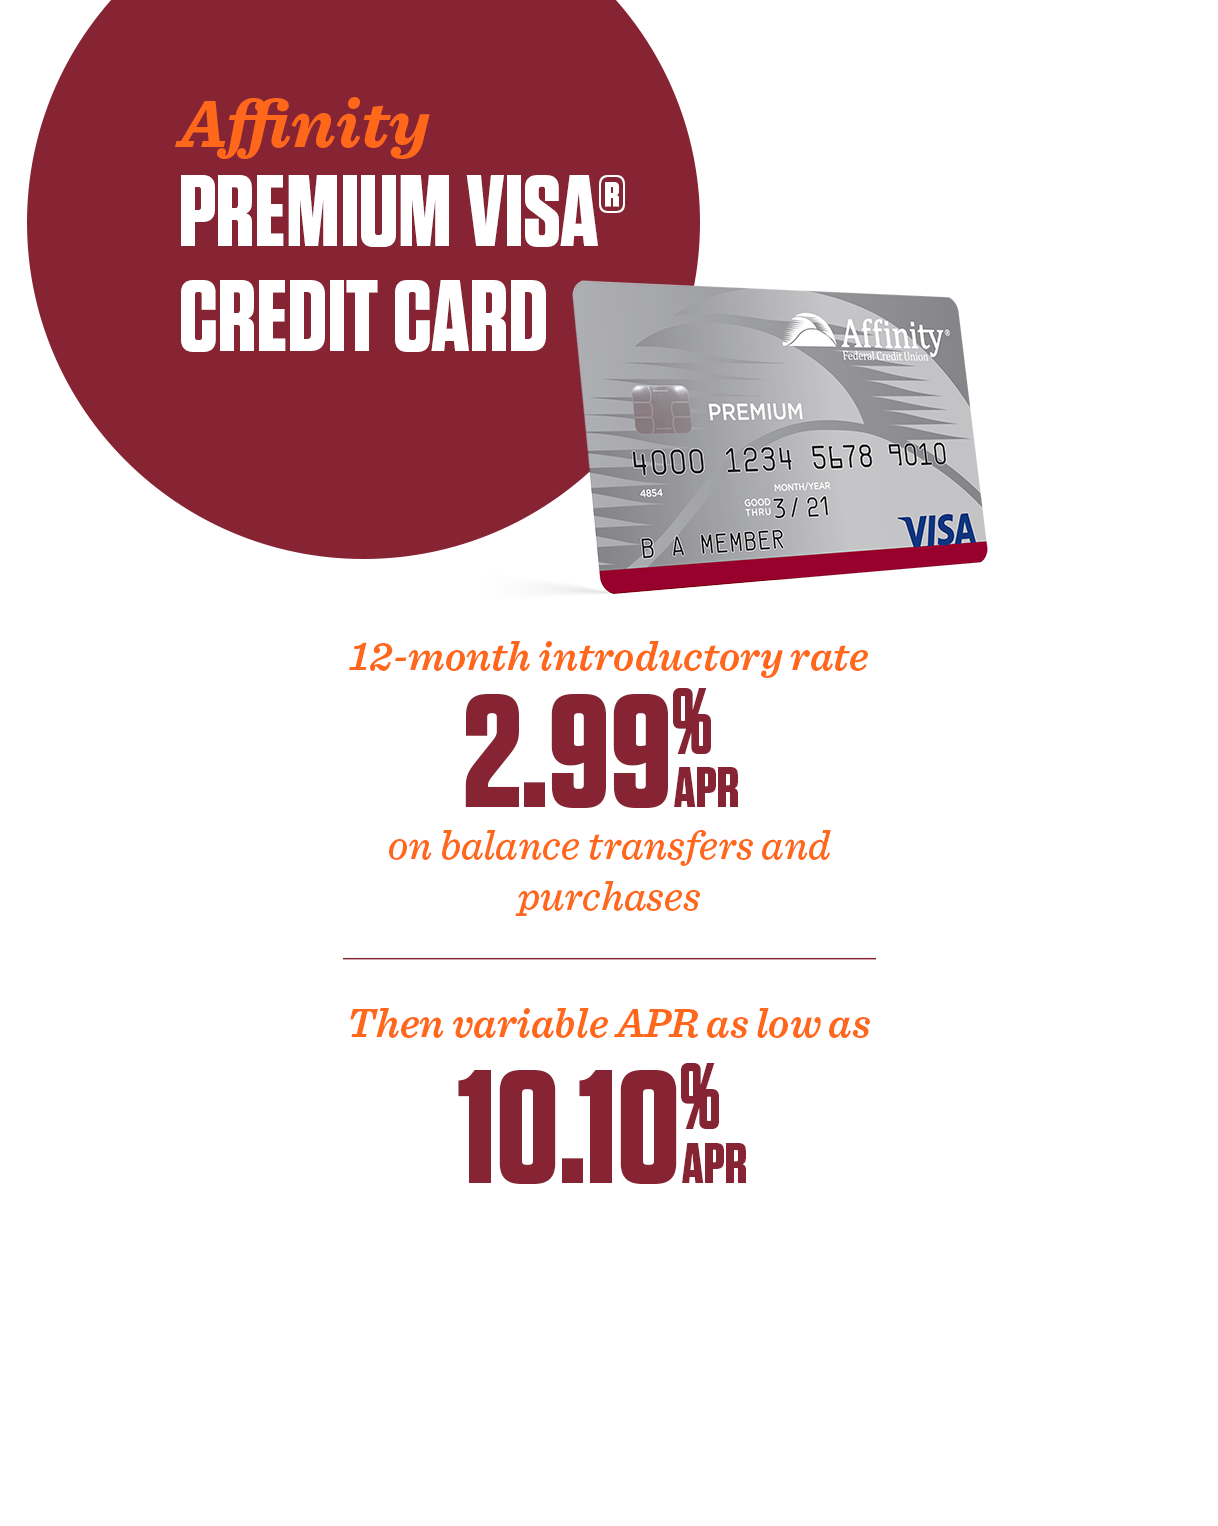 Premium Visa credit card promotion